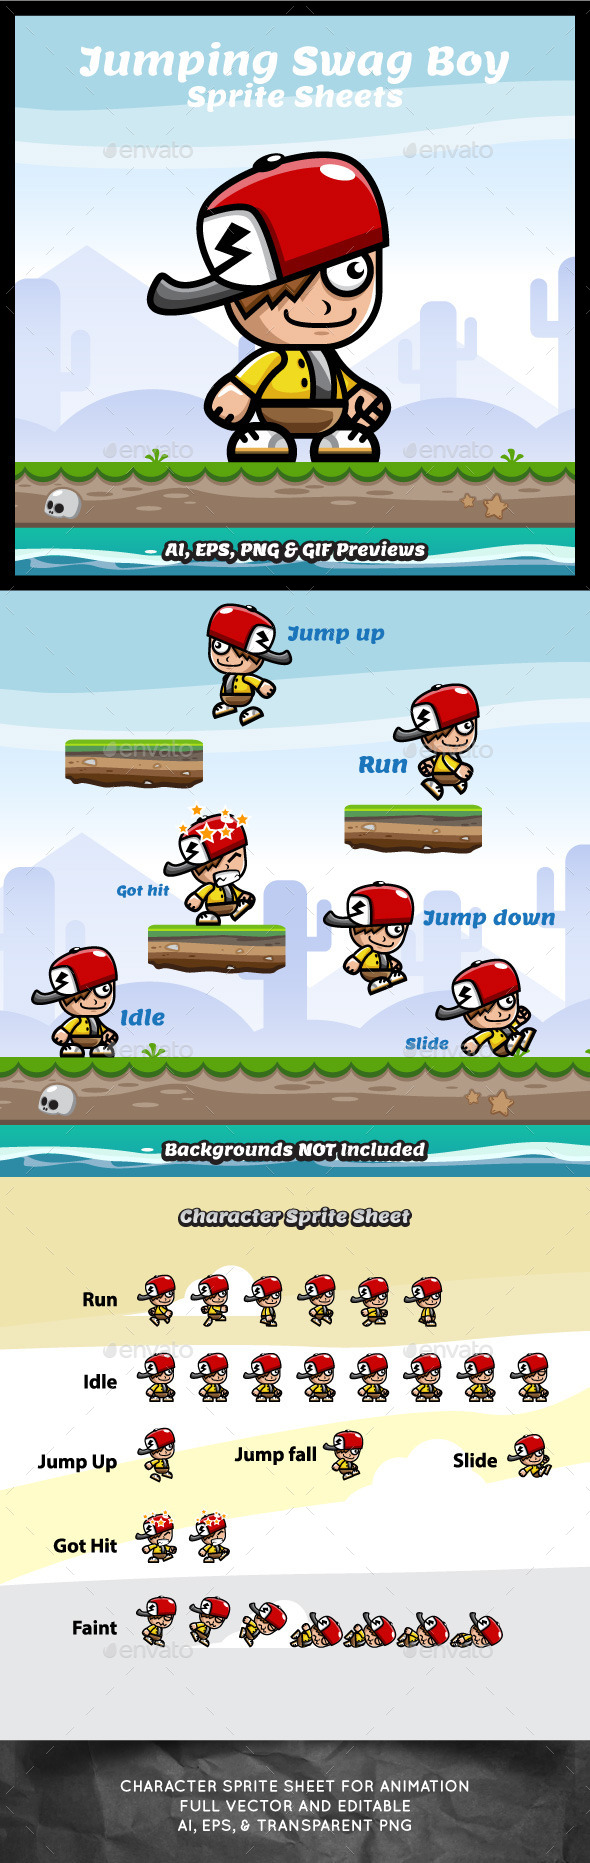 GraphicRiver Running and Jumping Swag Boy Spritesheets 9602209